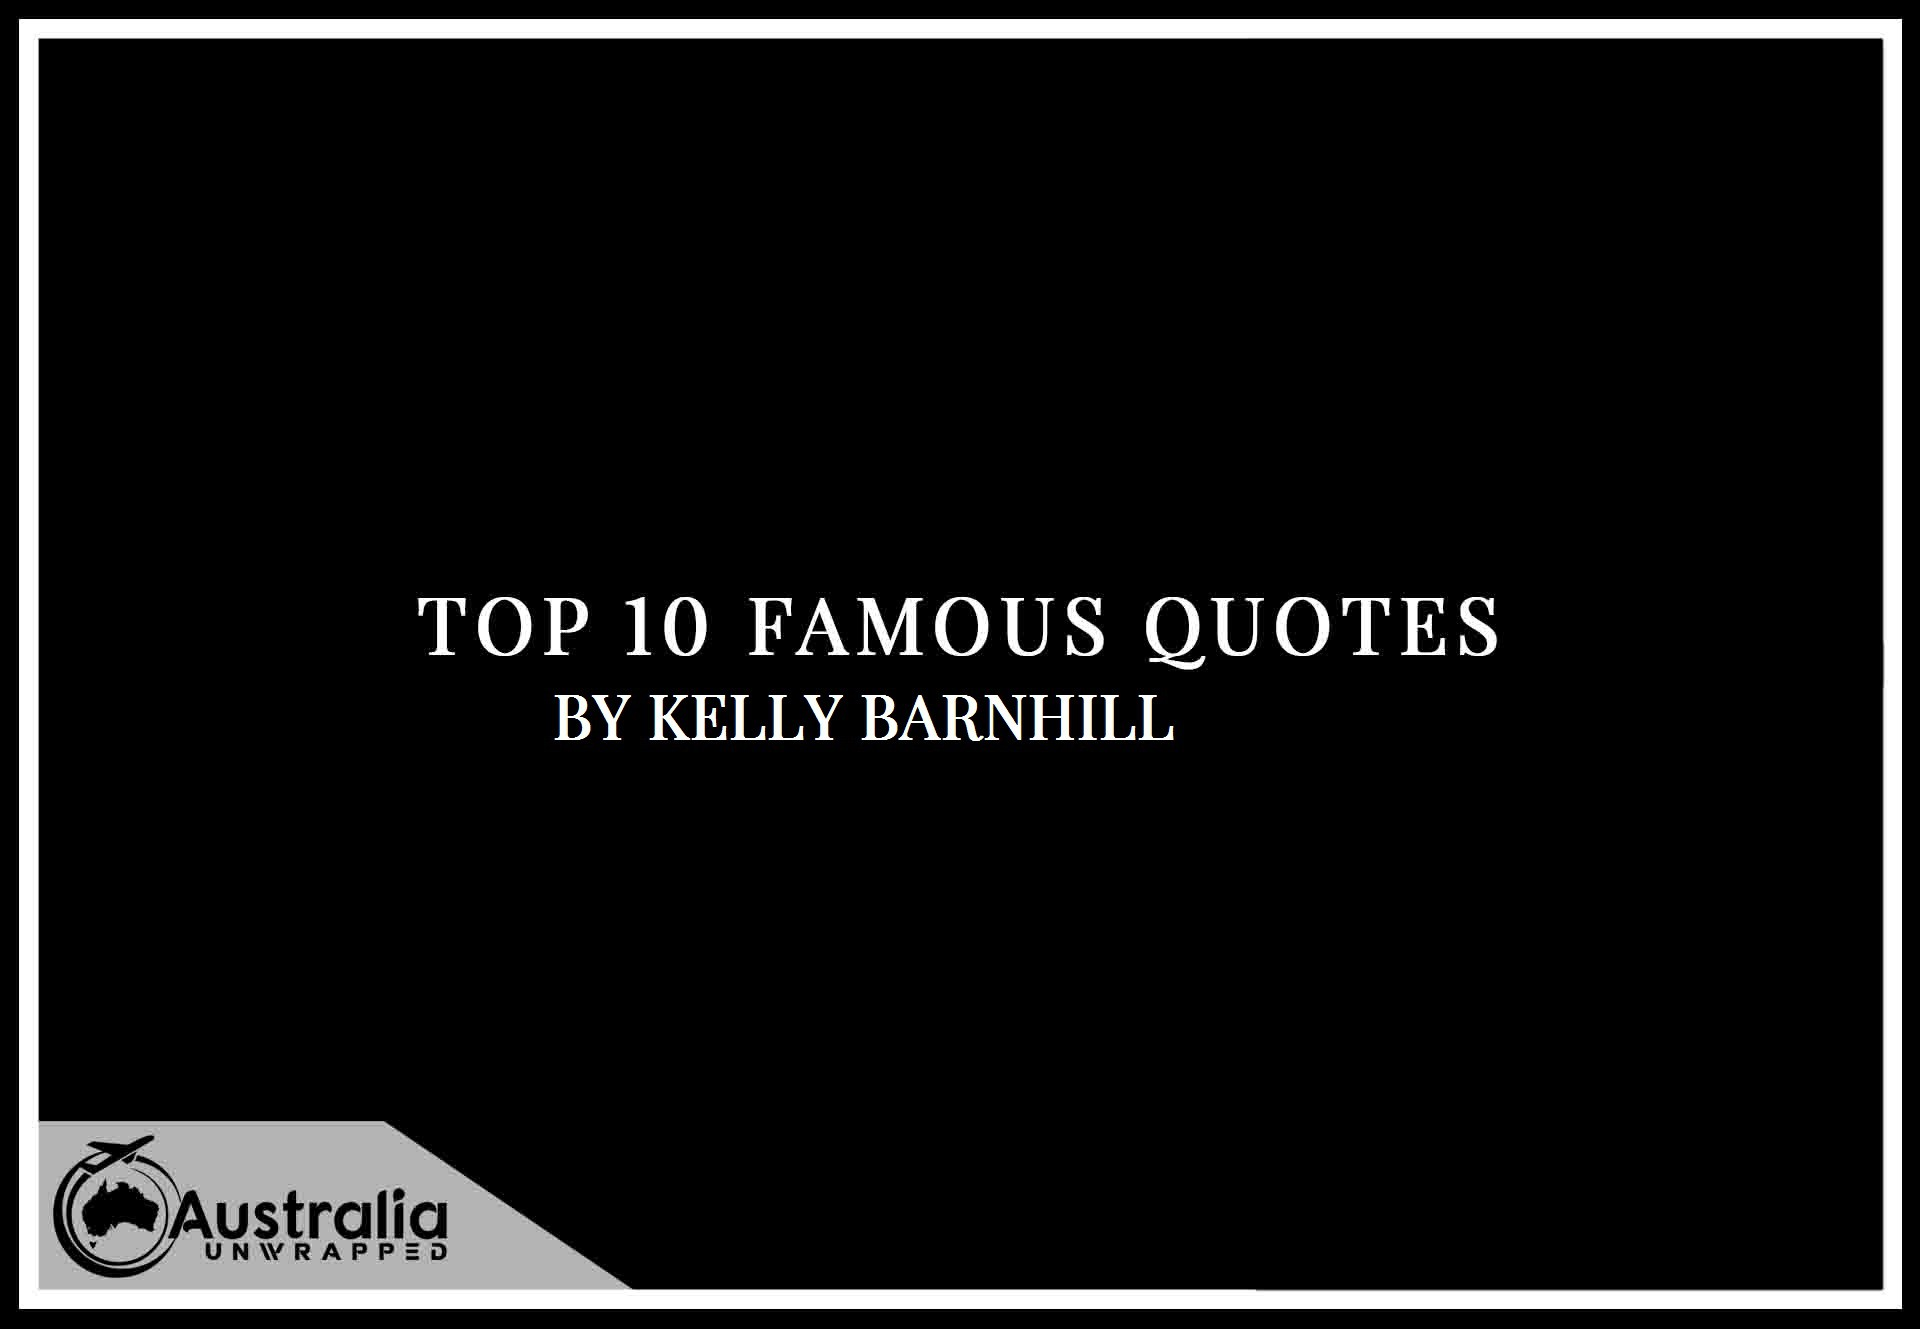 Kelly Barnhill's Top 10 Popular and Famous Quotes